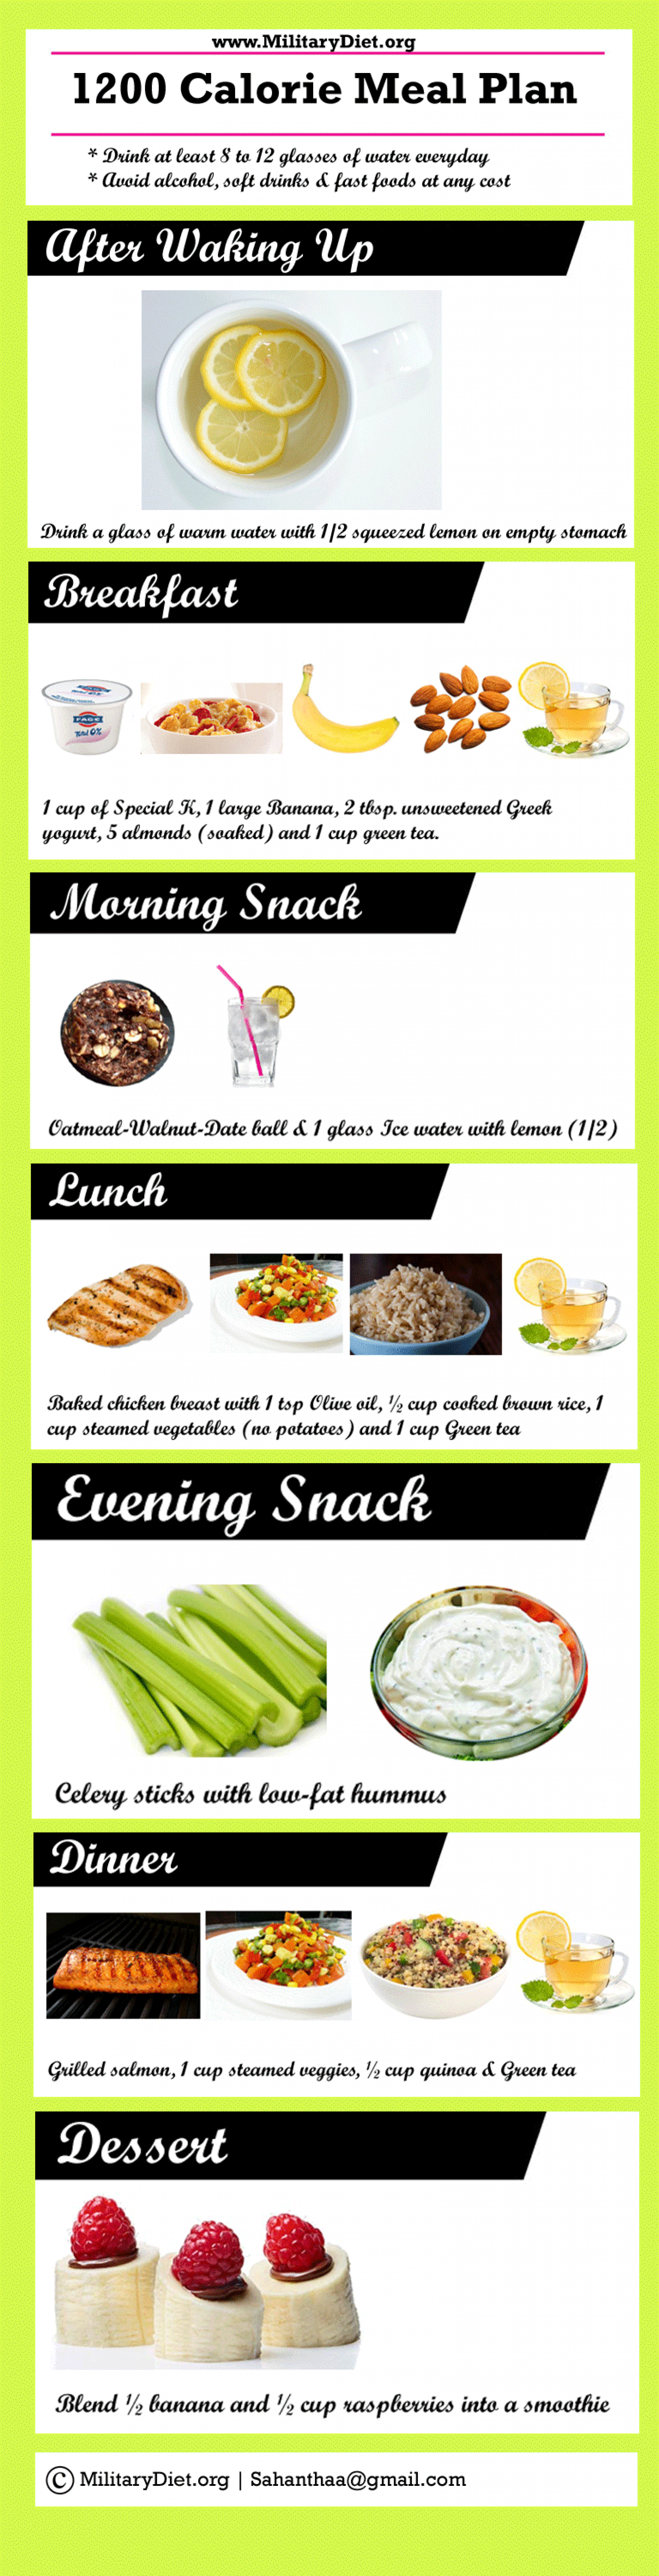 1200 Calorie Meal Plan Sample Menu for Weight Loss | Visual.ly